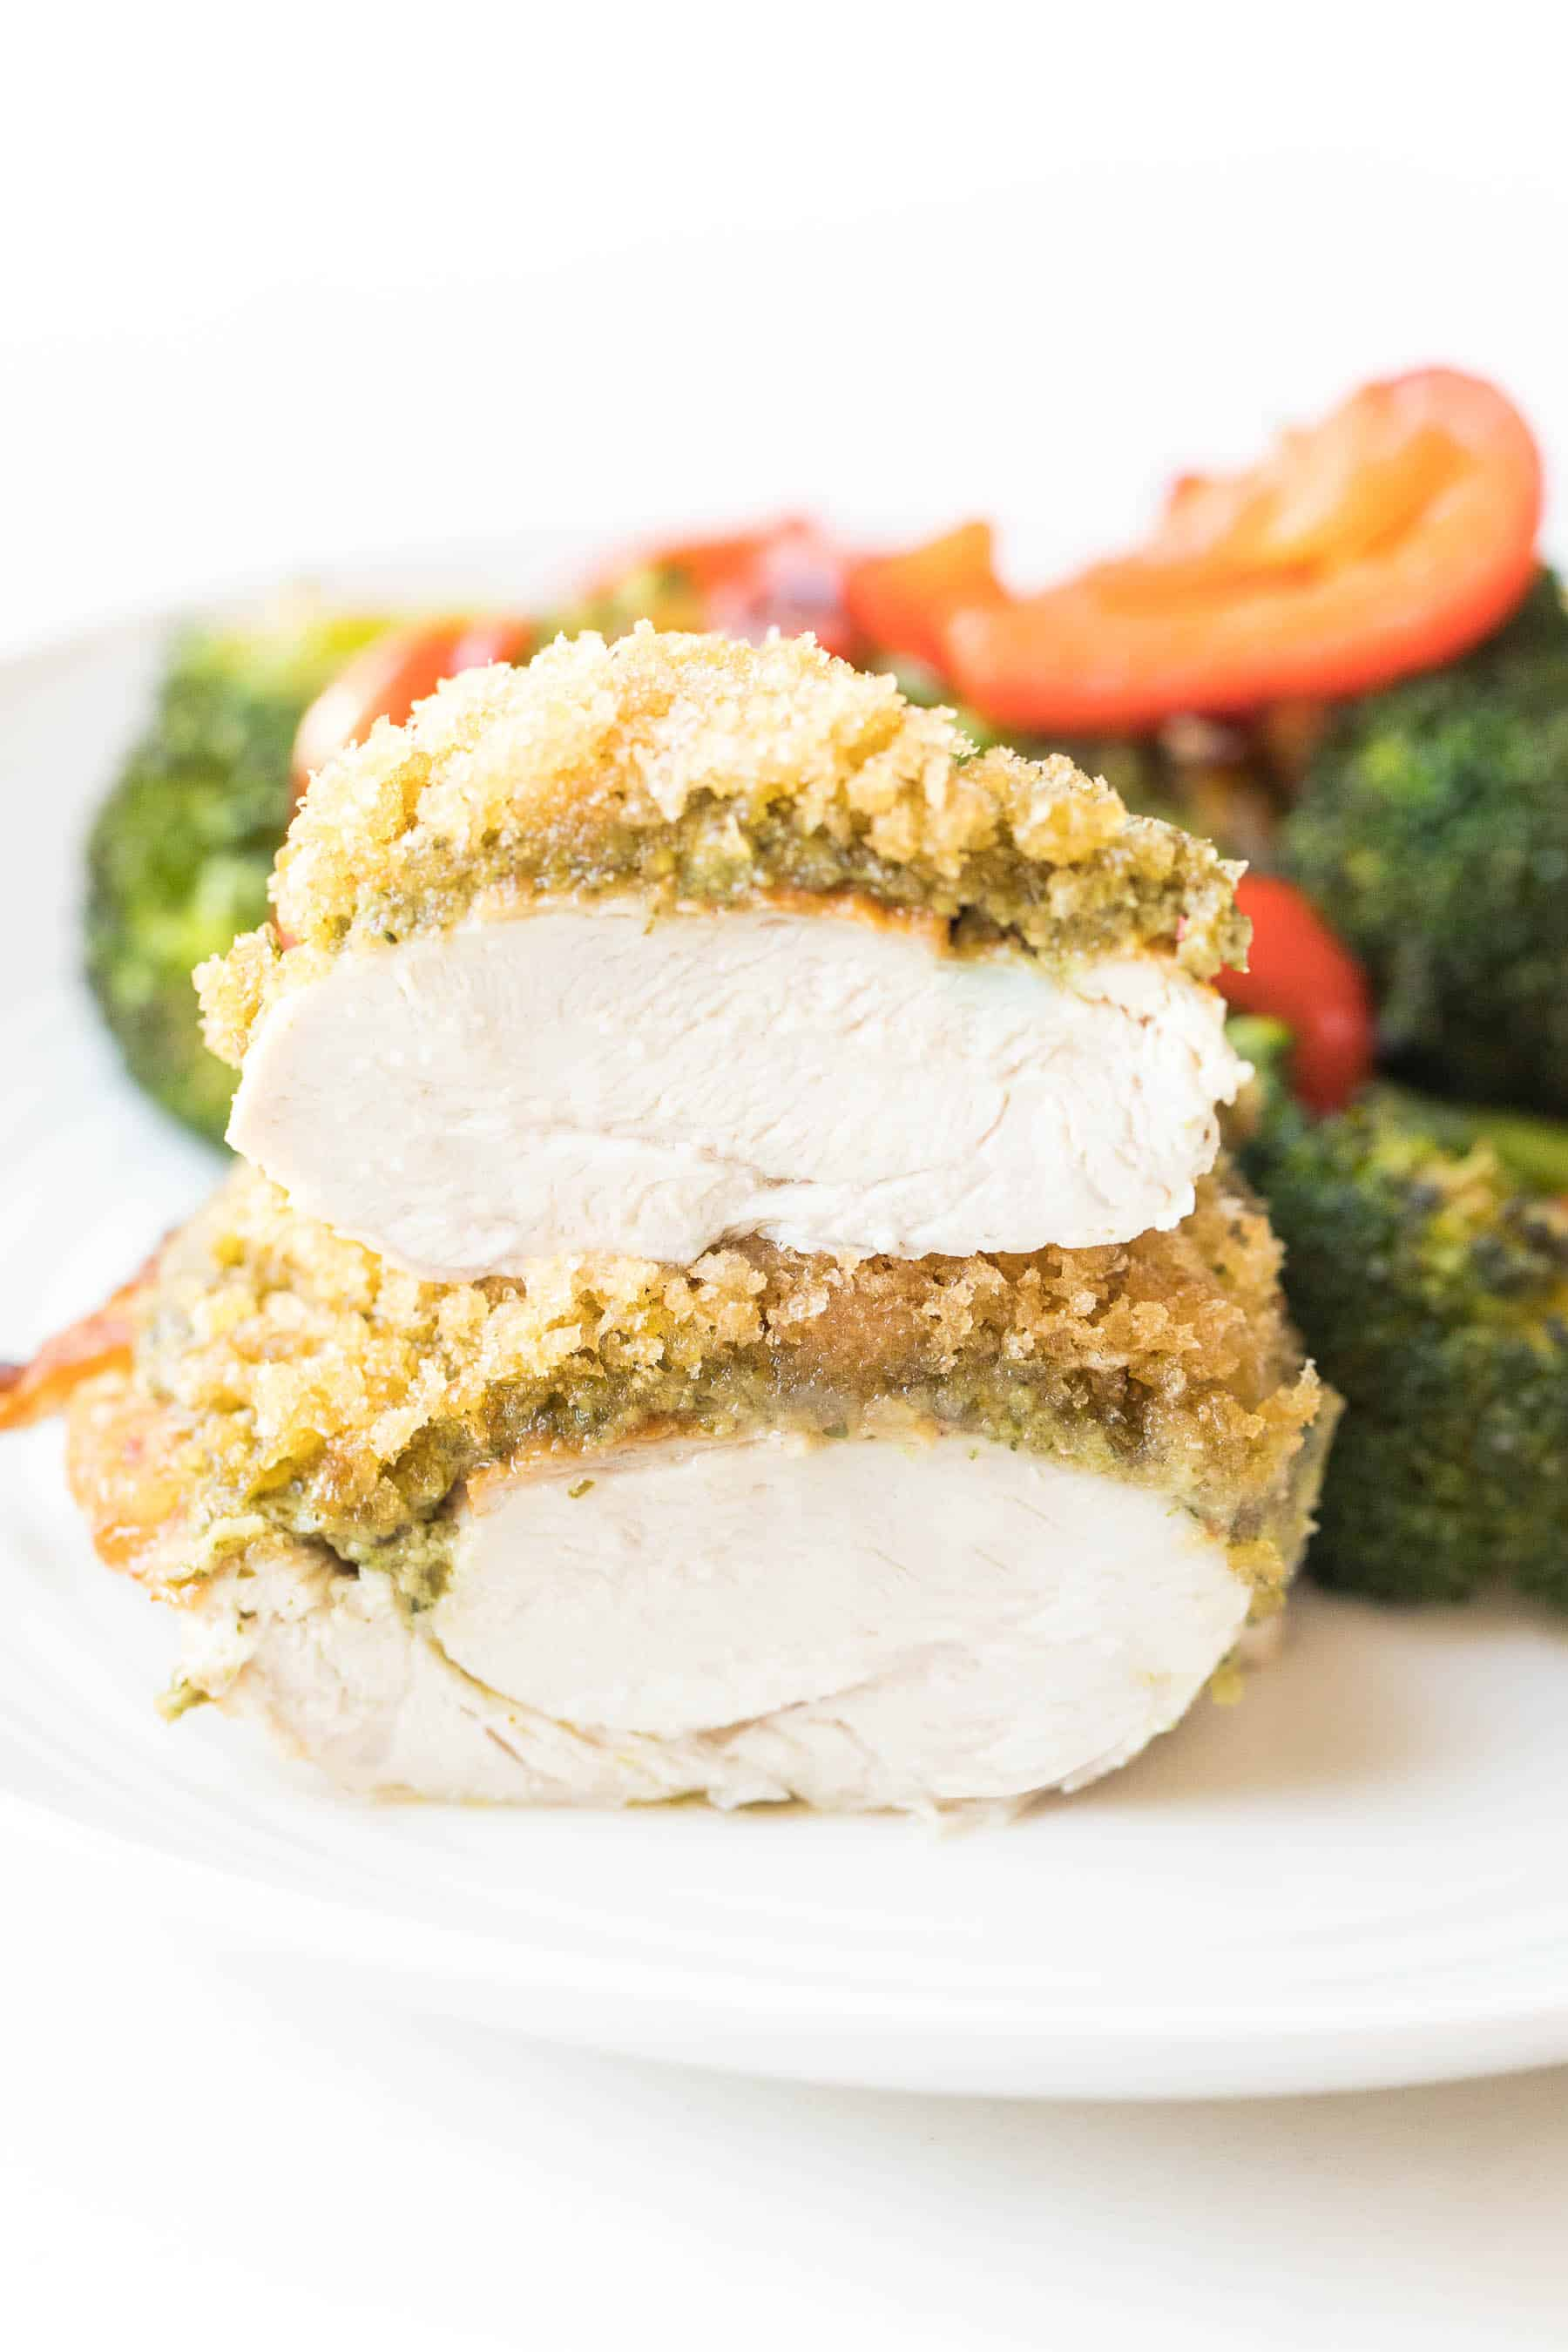 Crispy pesto chicken cut in half on a white plate